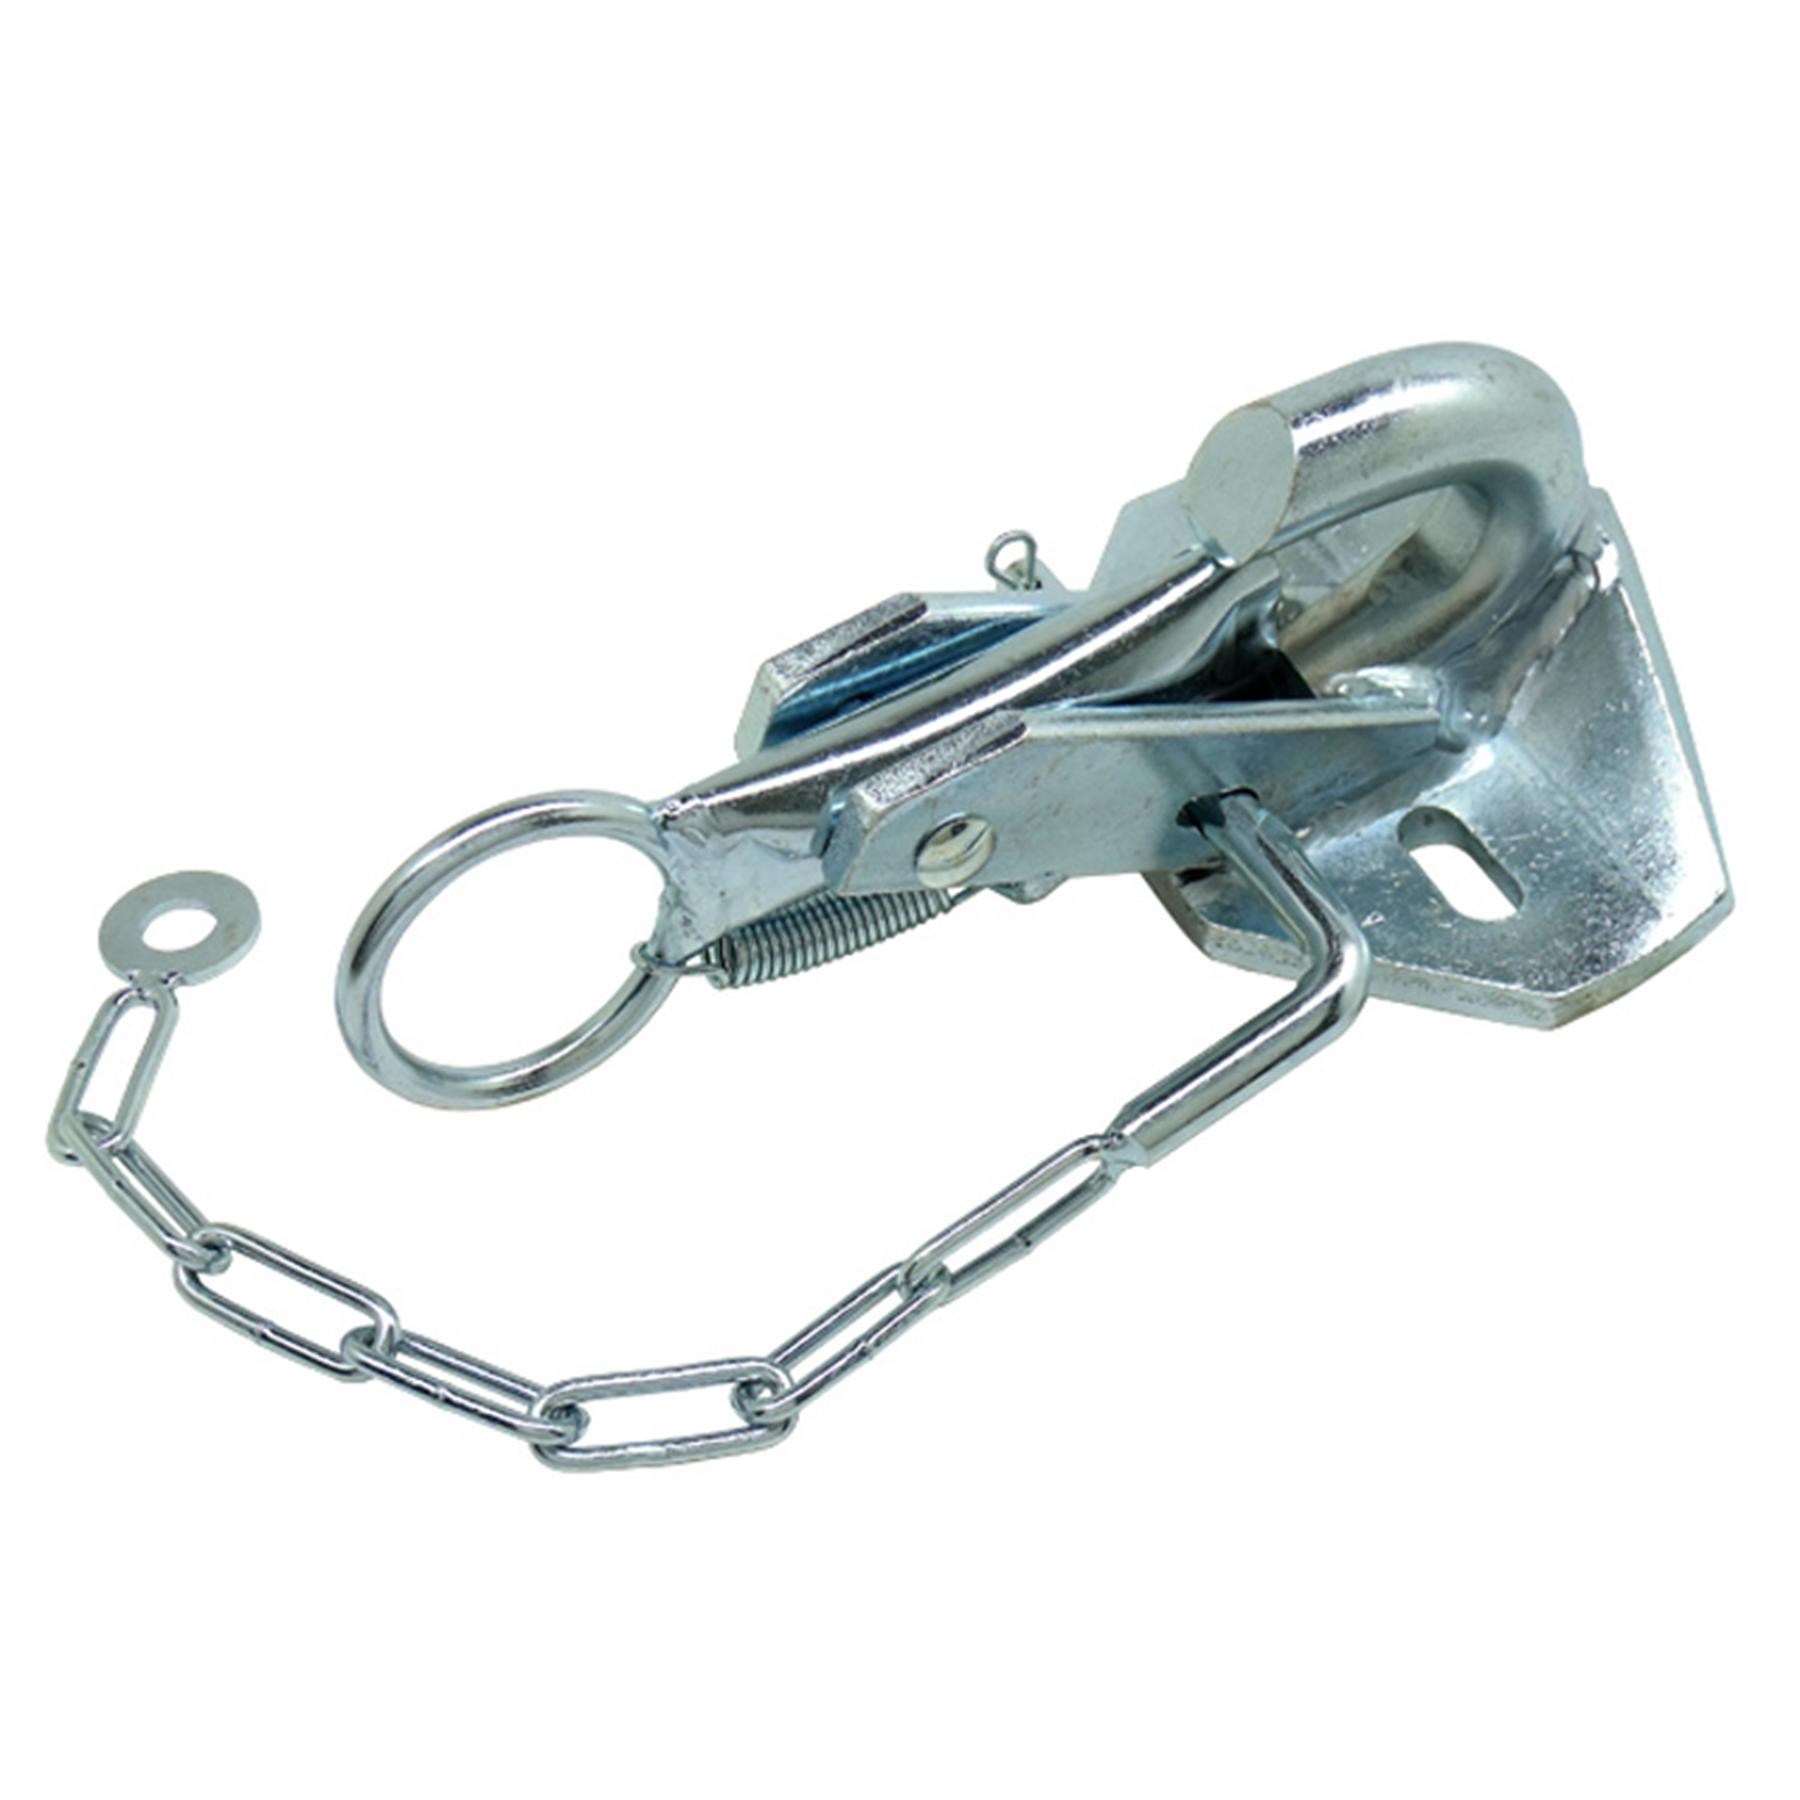 PINTYLE TYPE SLEIGH HITCH / HOOK - ARCTIC CAT